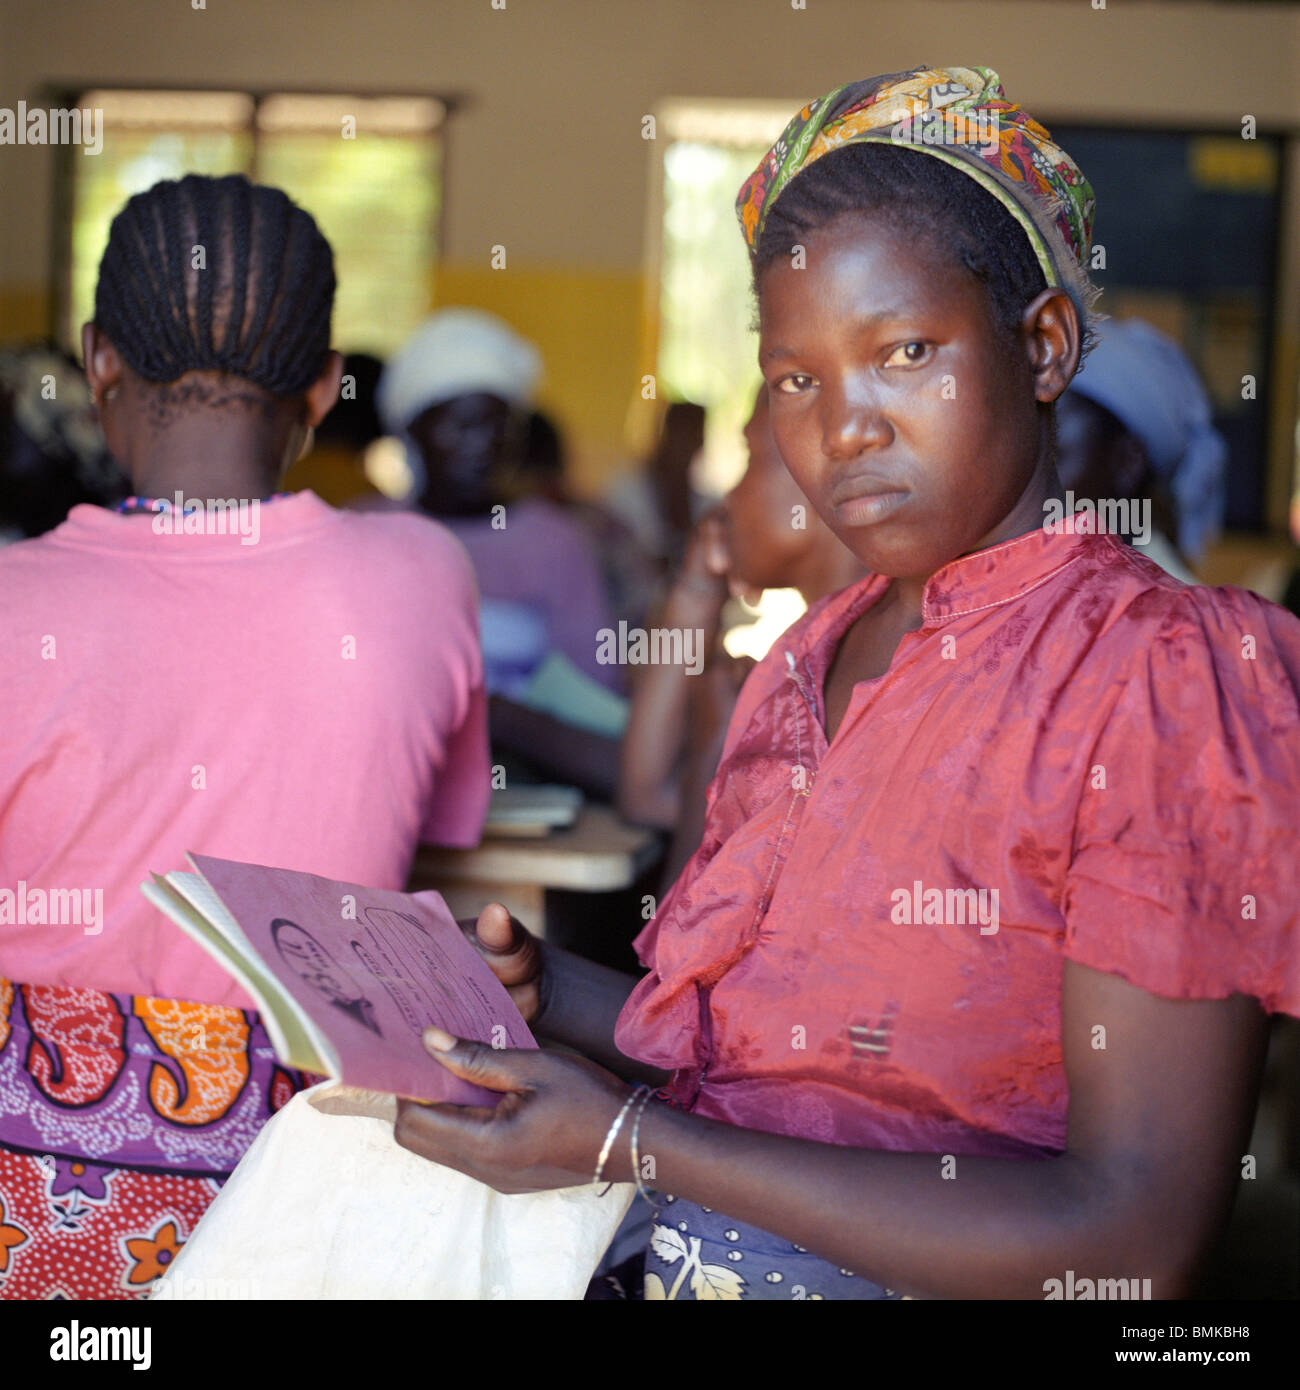 african traditional education essay In west africa, traditional education is based on informal apprenticeship with kin and early participation in the work force special skills, such as medicine, music, crafts, etc are acquired through more formal apprenticeship with specialized persons.